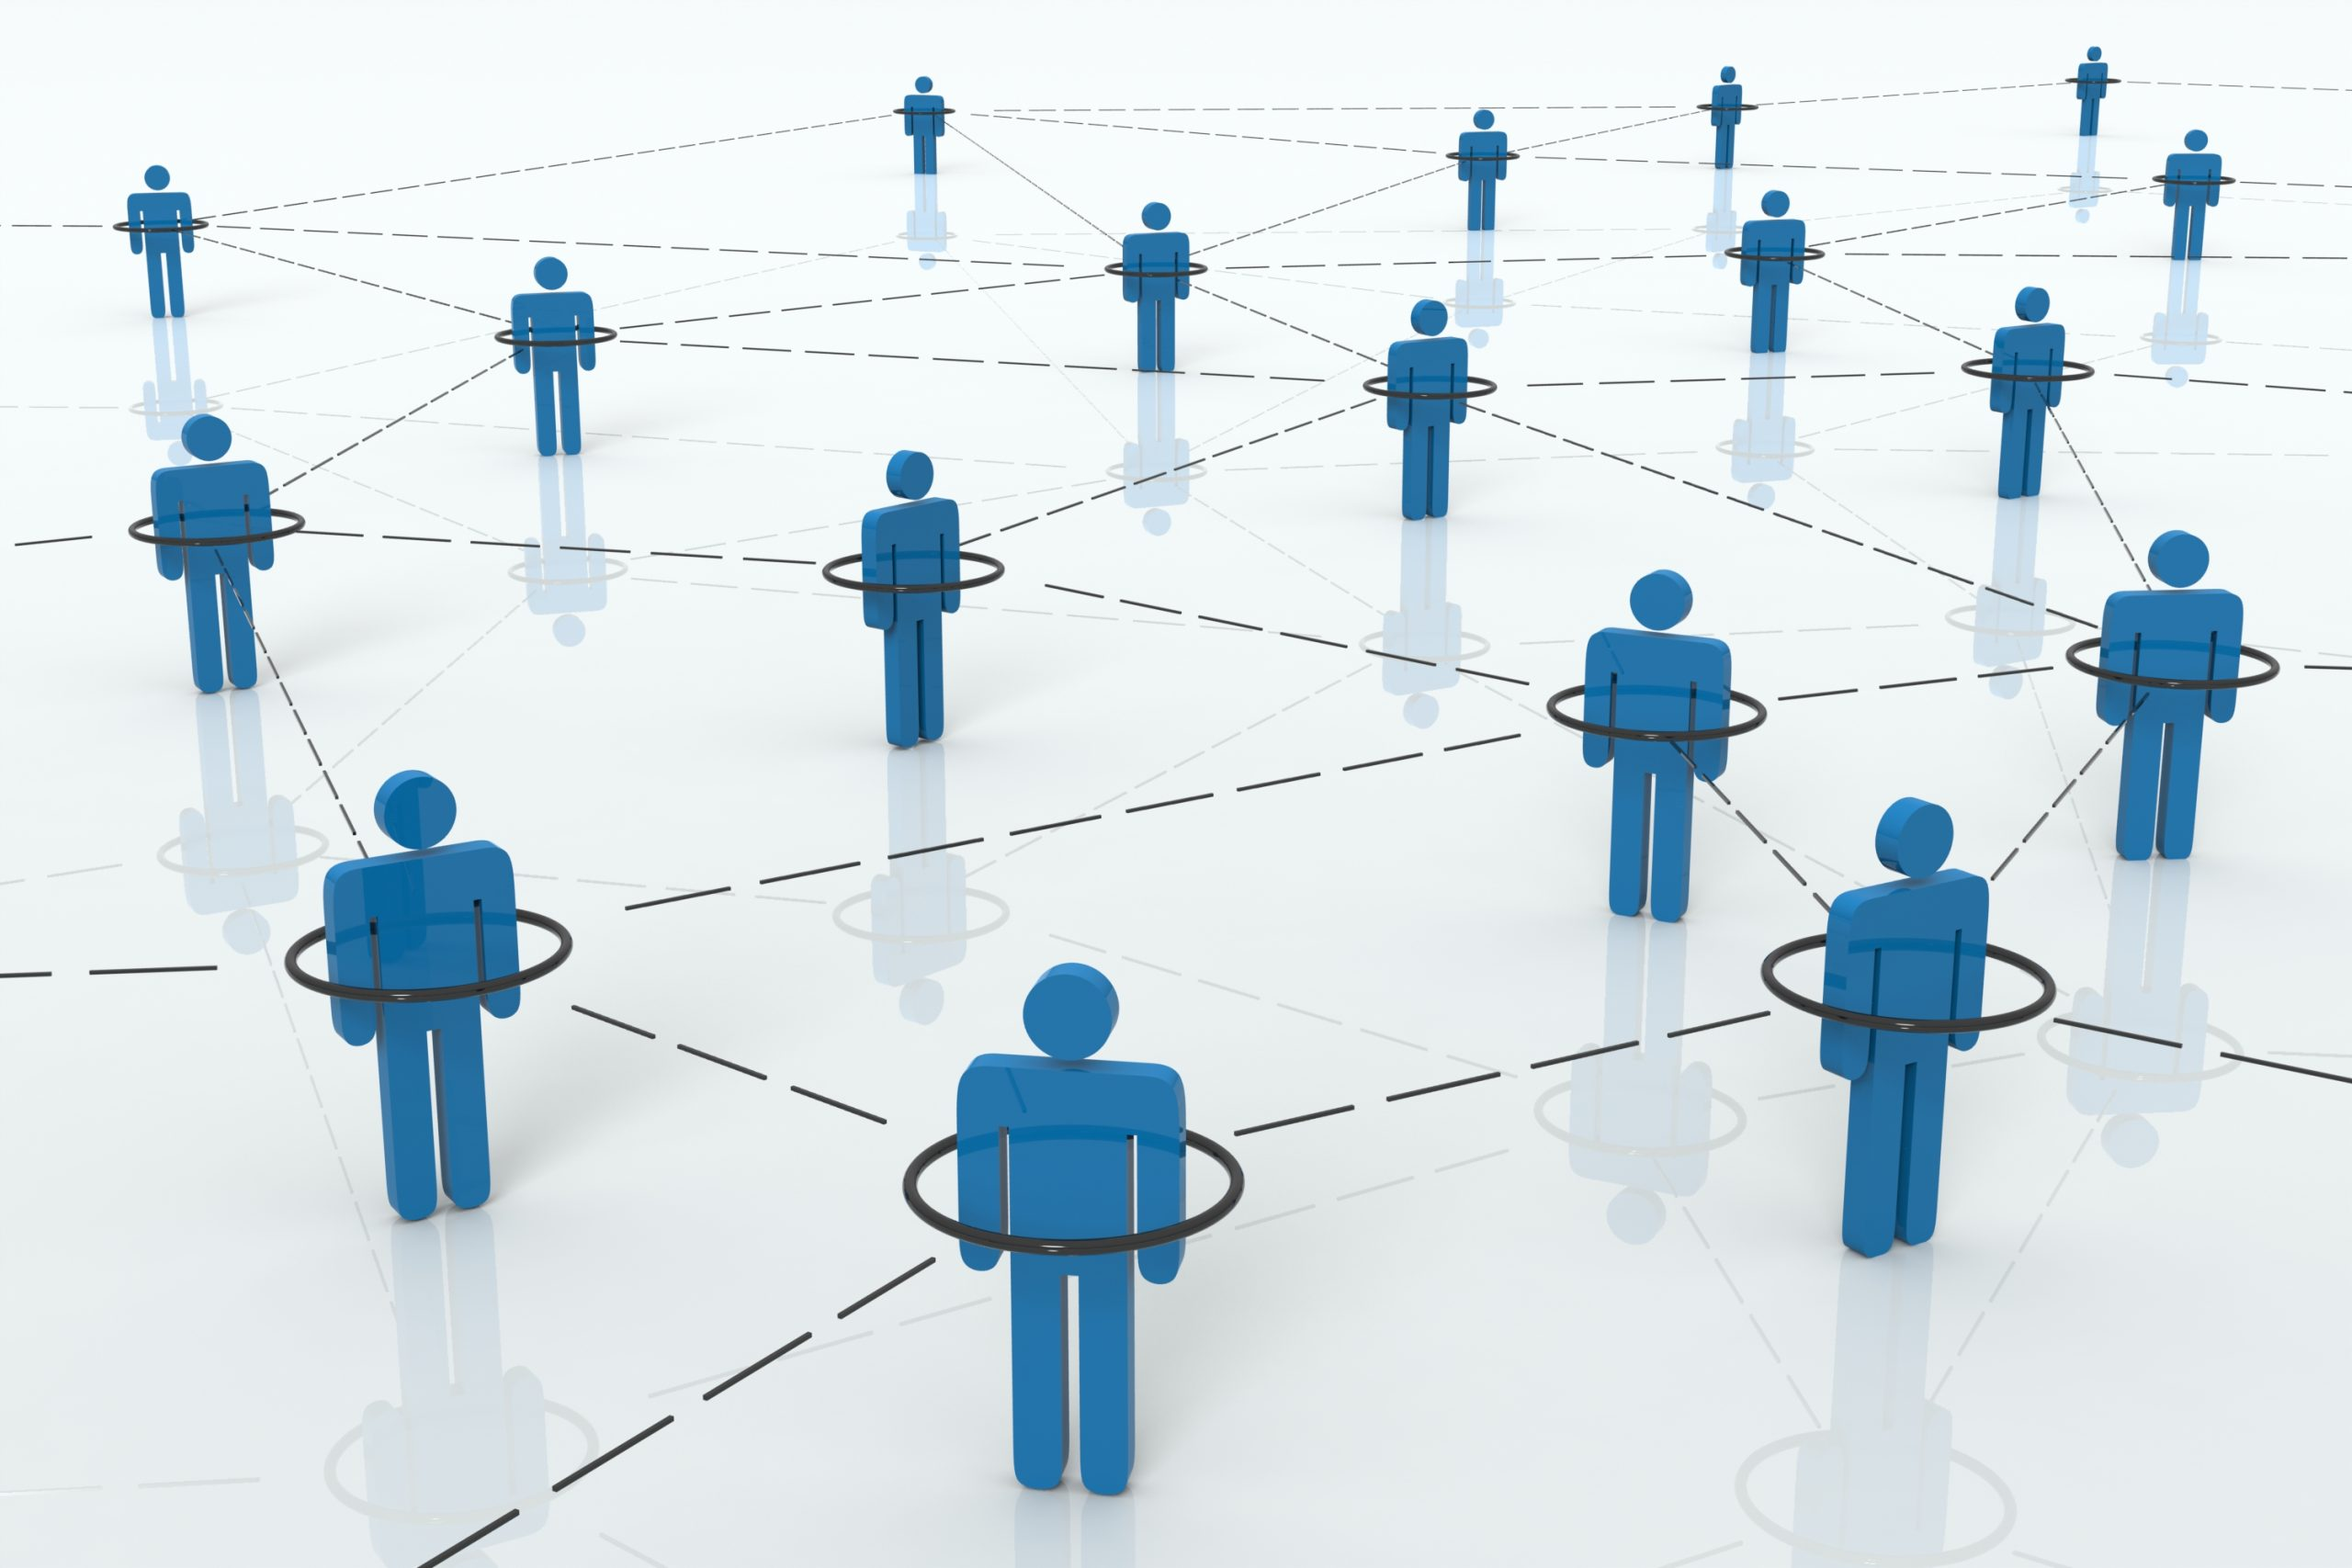 Networking: Blue People connected by dashes